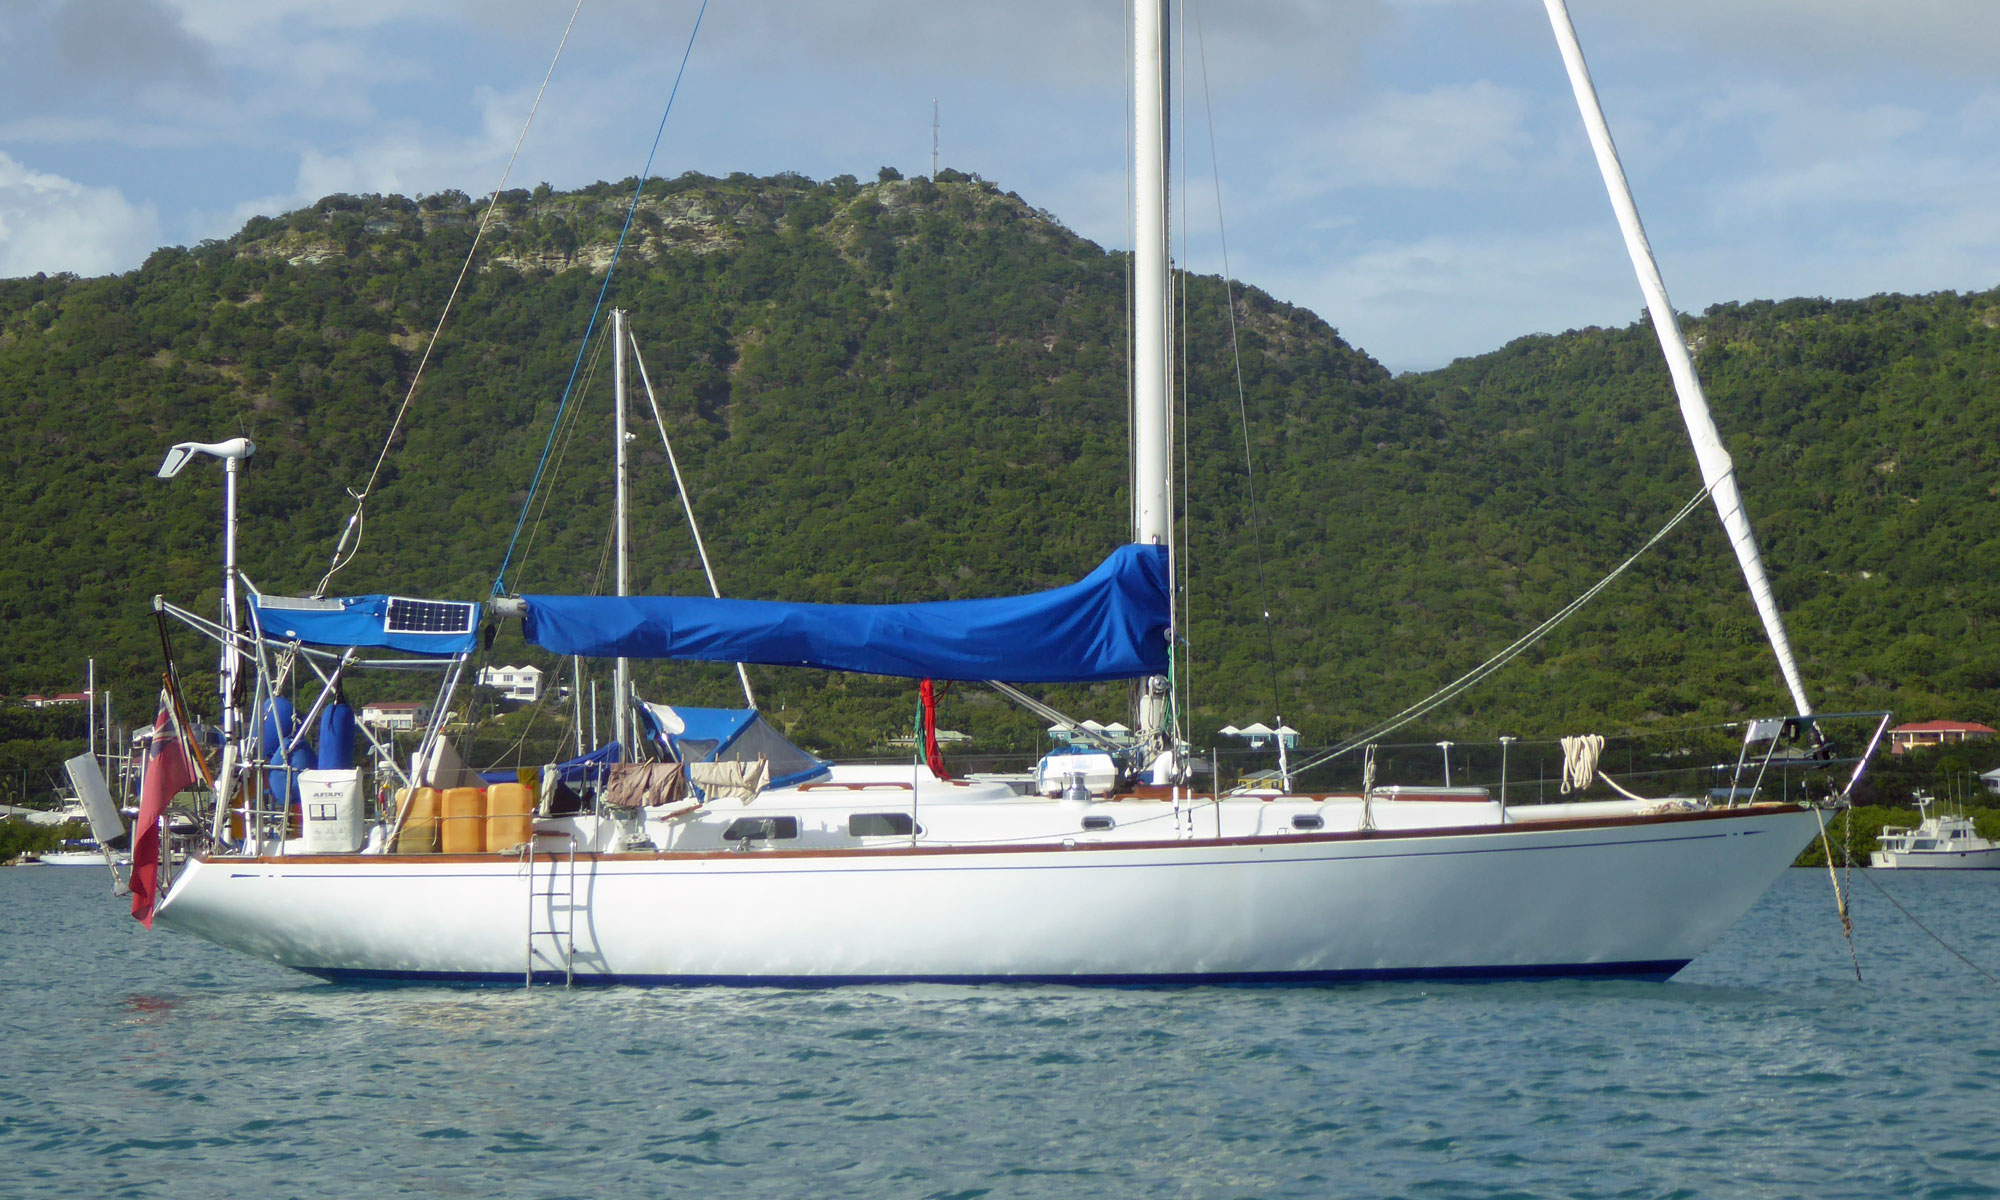 A Swan 40 sailboat at anchor